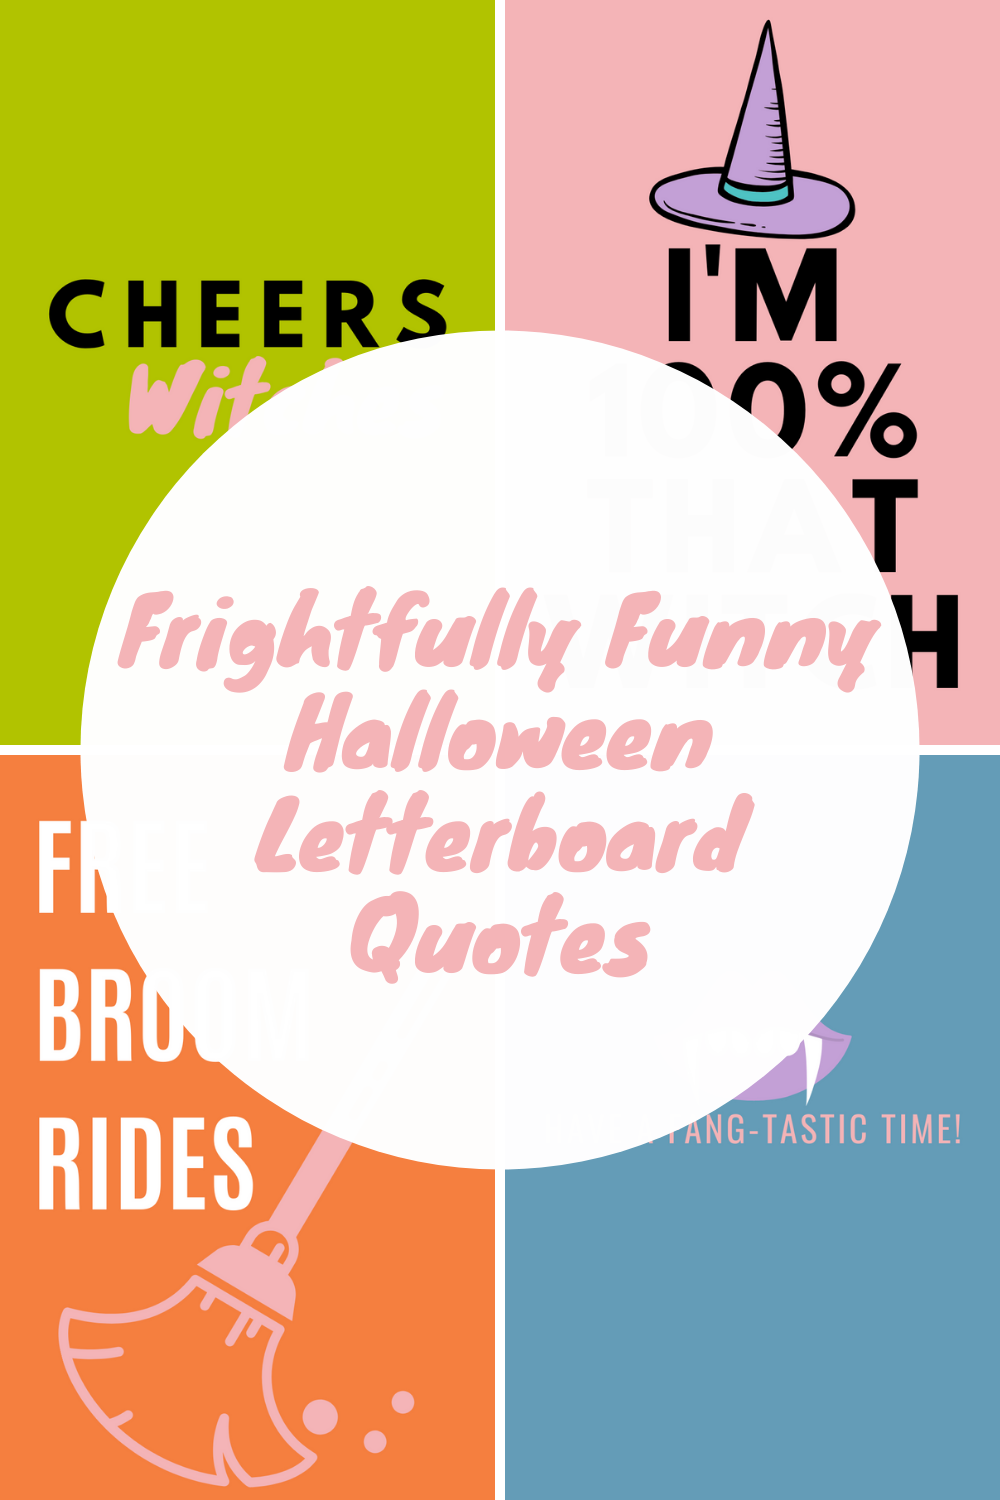 Halloween Letterboard Quotes